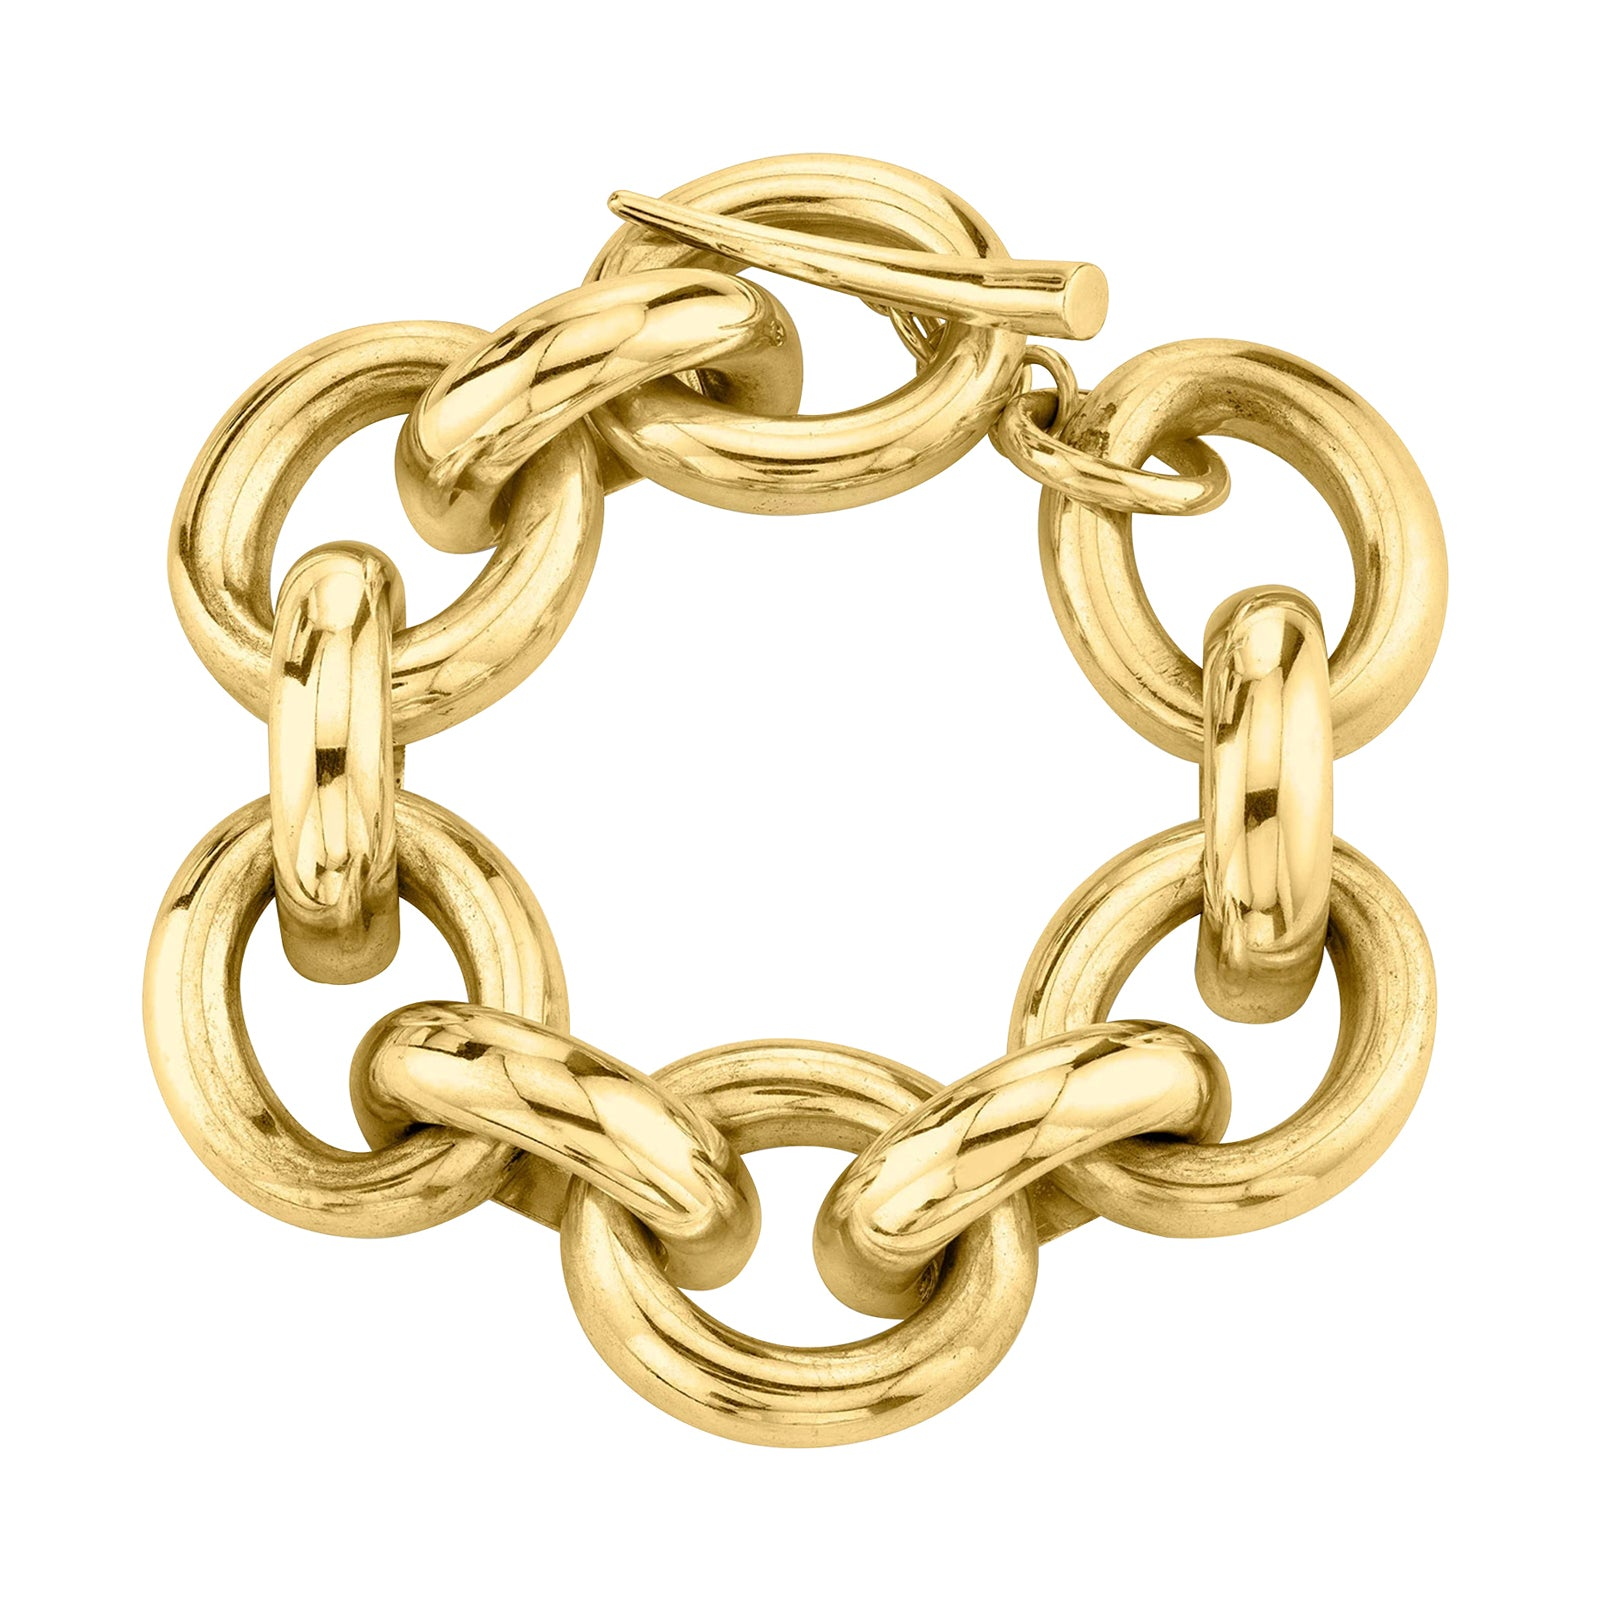 Gabriela Artigas & Company Full Link Bracelet - Yellow Gold - Bracelets - Broken English Jewelry